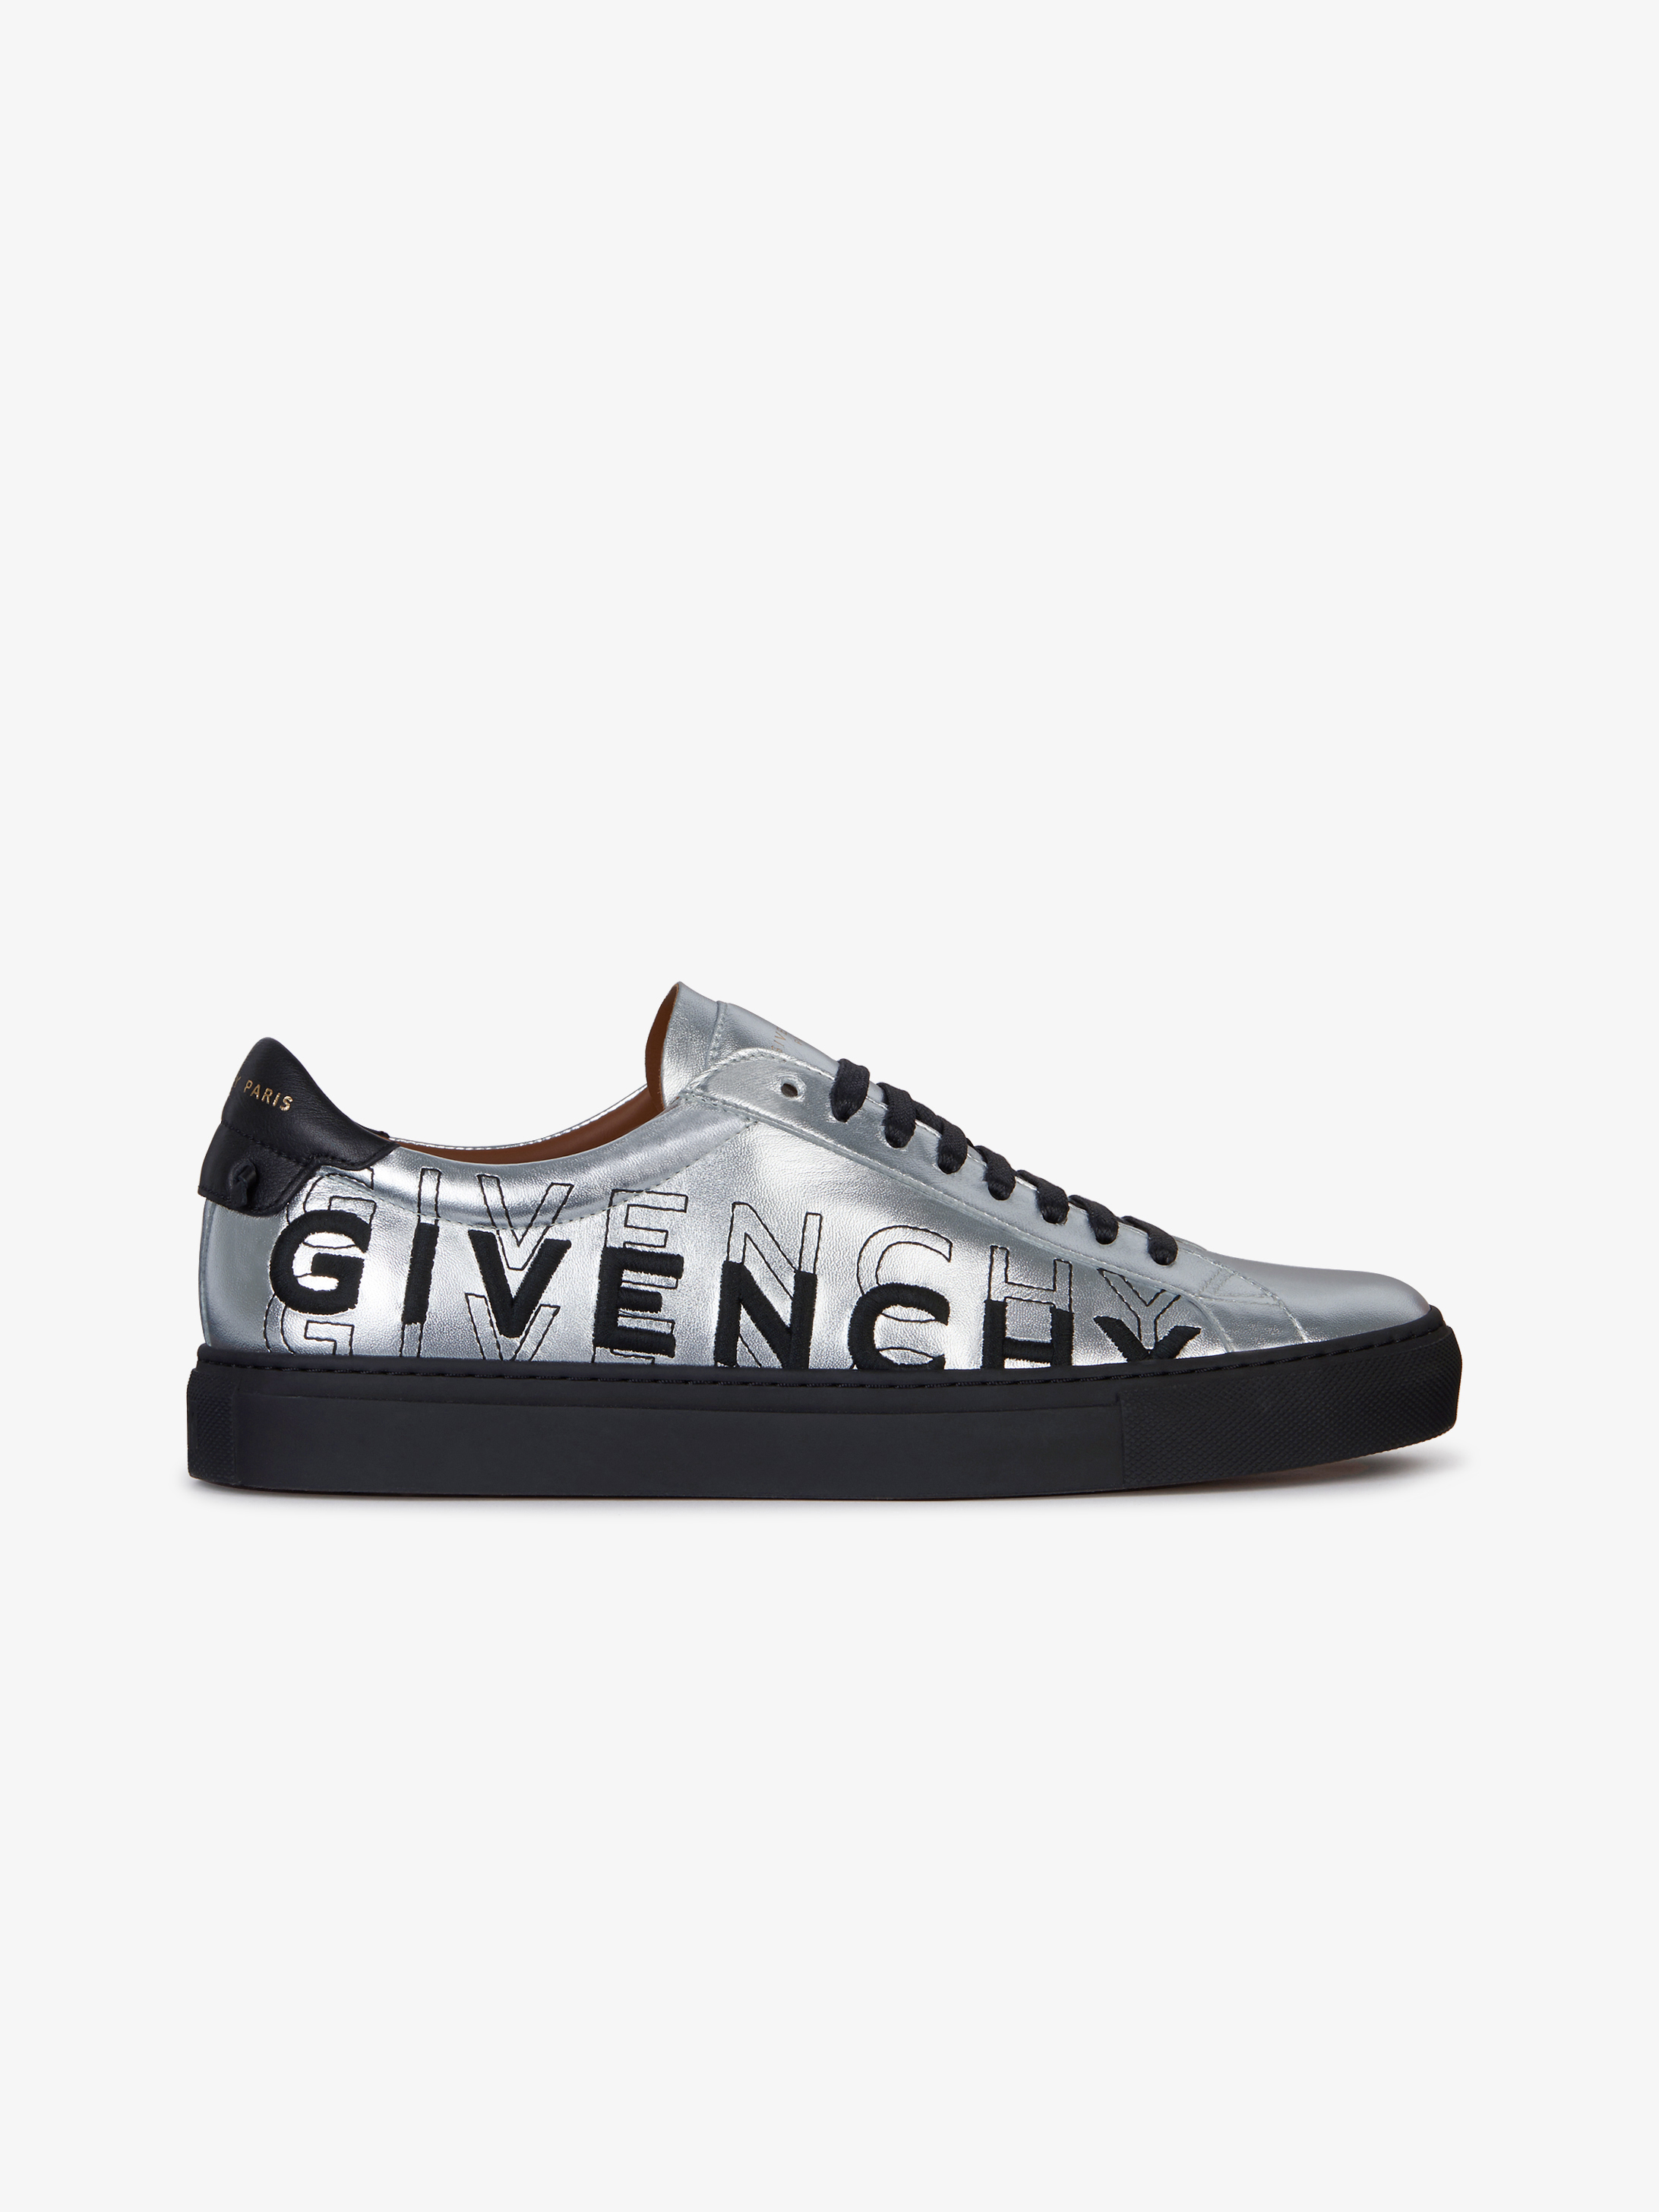 GIVENCHY shading sneakers in metallized leather